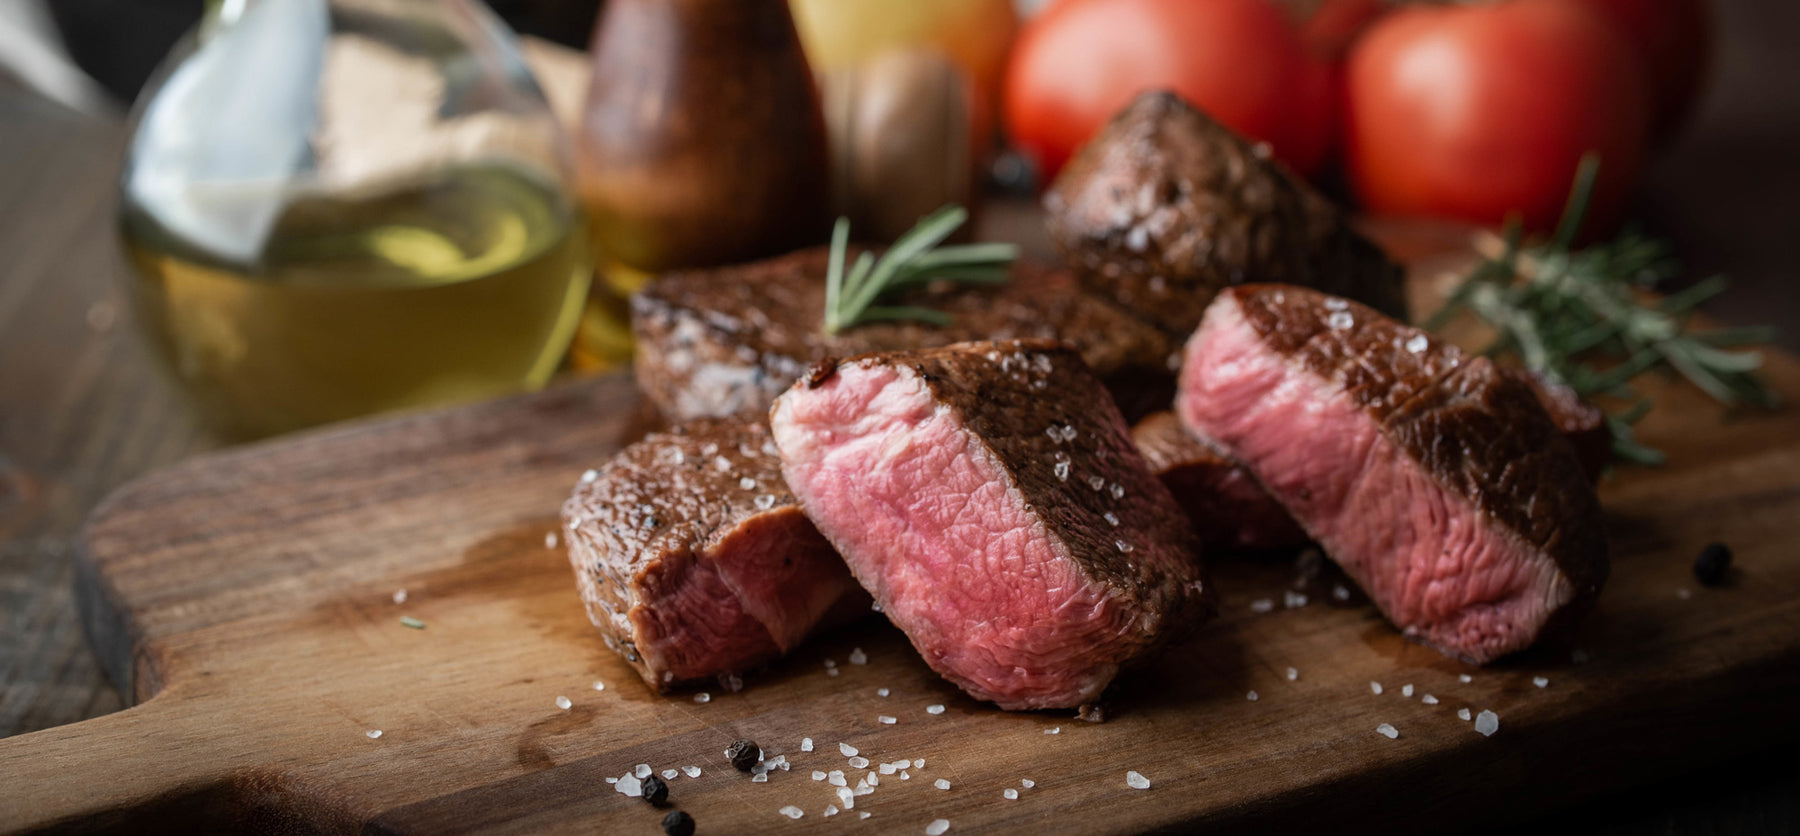 Filet mignon | What is it?